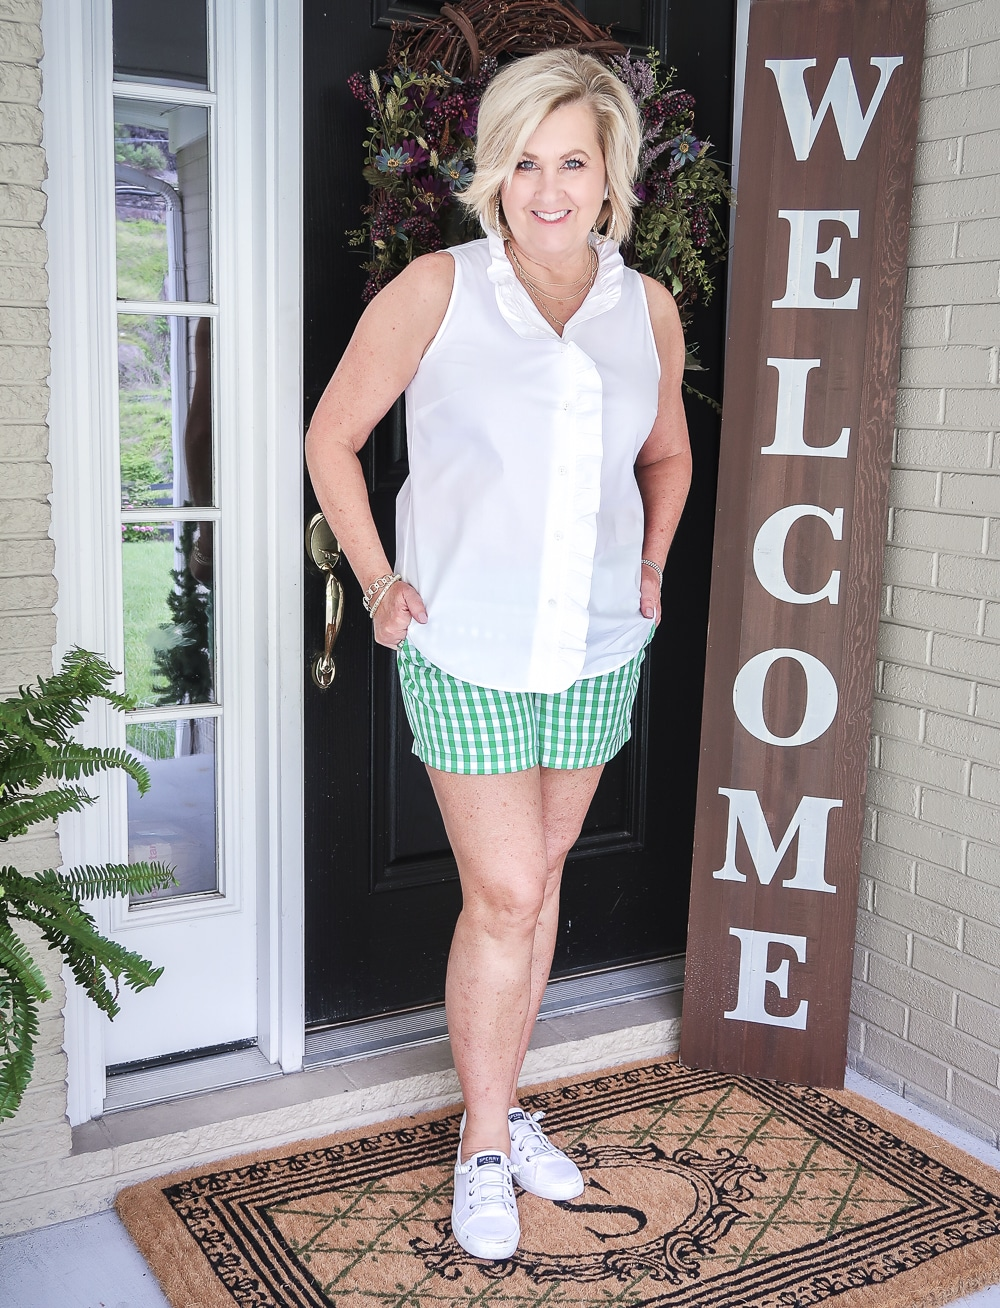 FASHION BLOGGER 50 Is Not Old wearing a sleeveless top with a ruffled placket and green gingham shorts with a pair of white Sperry slip on sneakers.